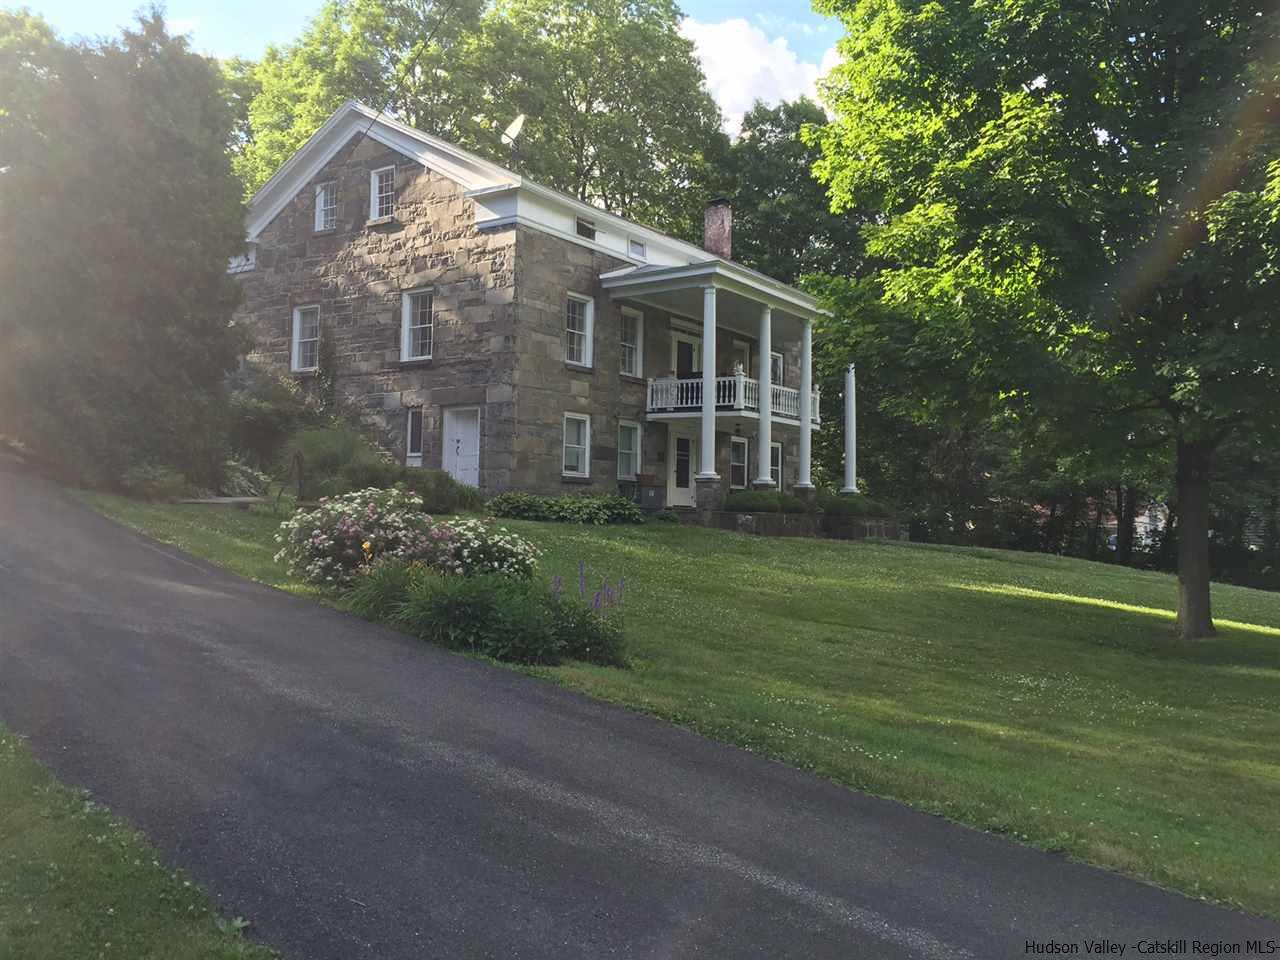 Single Family Home for Sale at 121 Vineyard Avenue 121 Vineyard Avenue Highland, New York 12528 United States